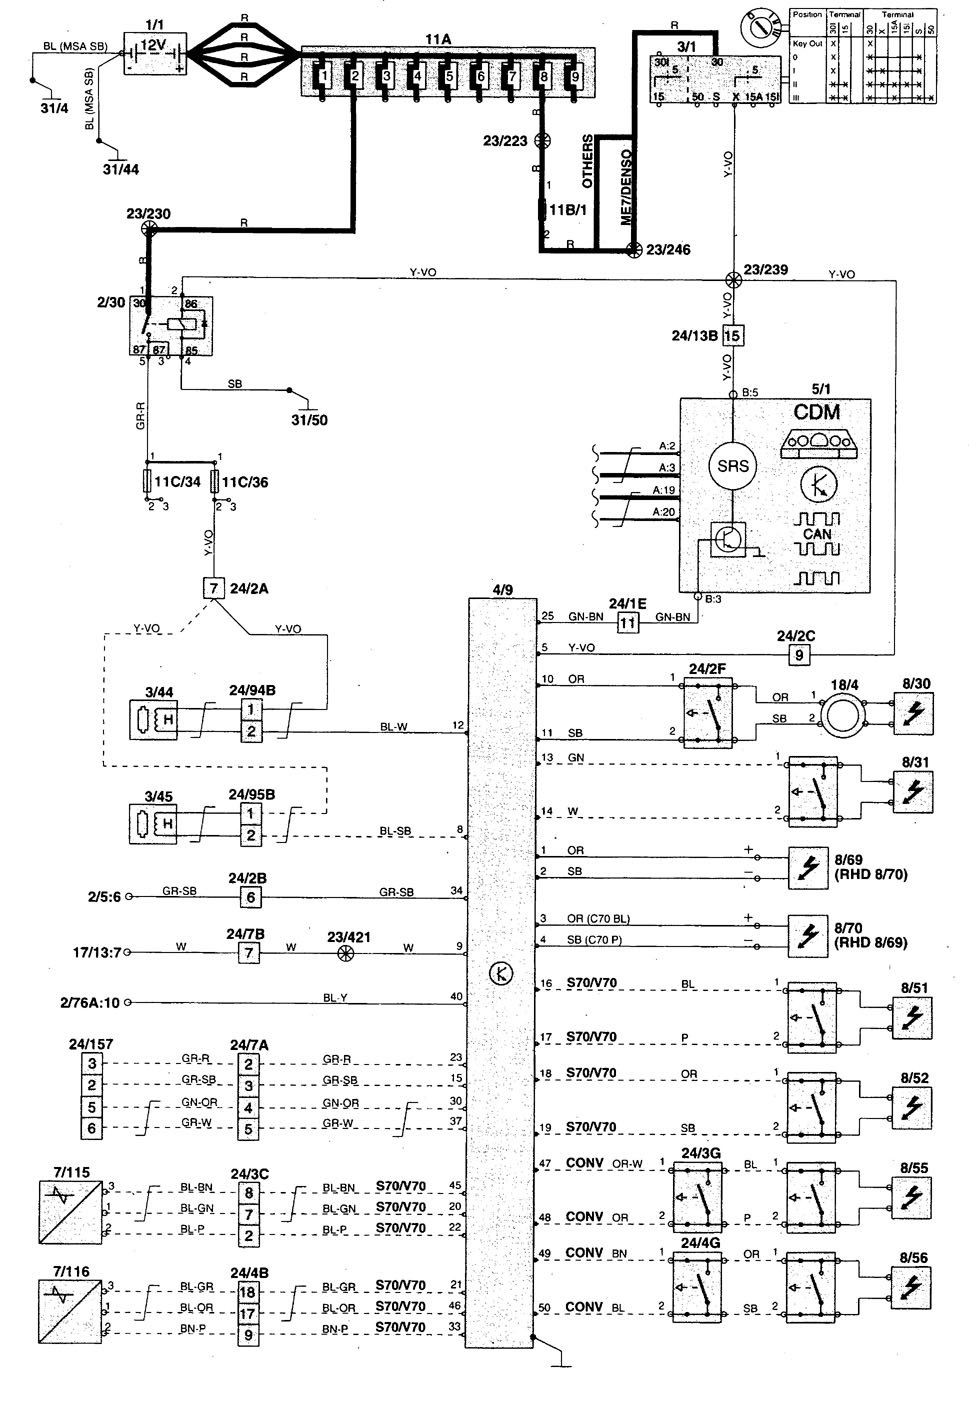 volvo s70 wiring diagram air bags 1999 volvo s70 (1999 2000) wiring diagrams air bags carknowledge 2000 volvo s70 wiring diagram at bayanpartner.co